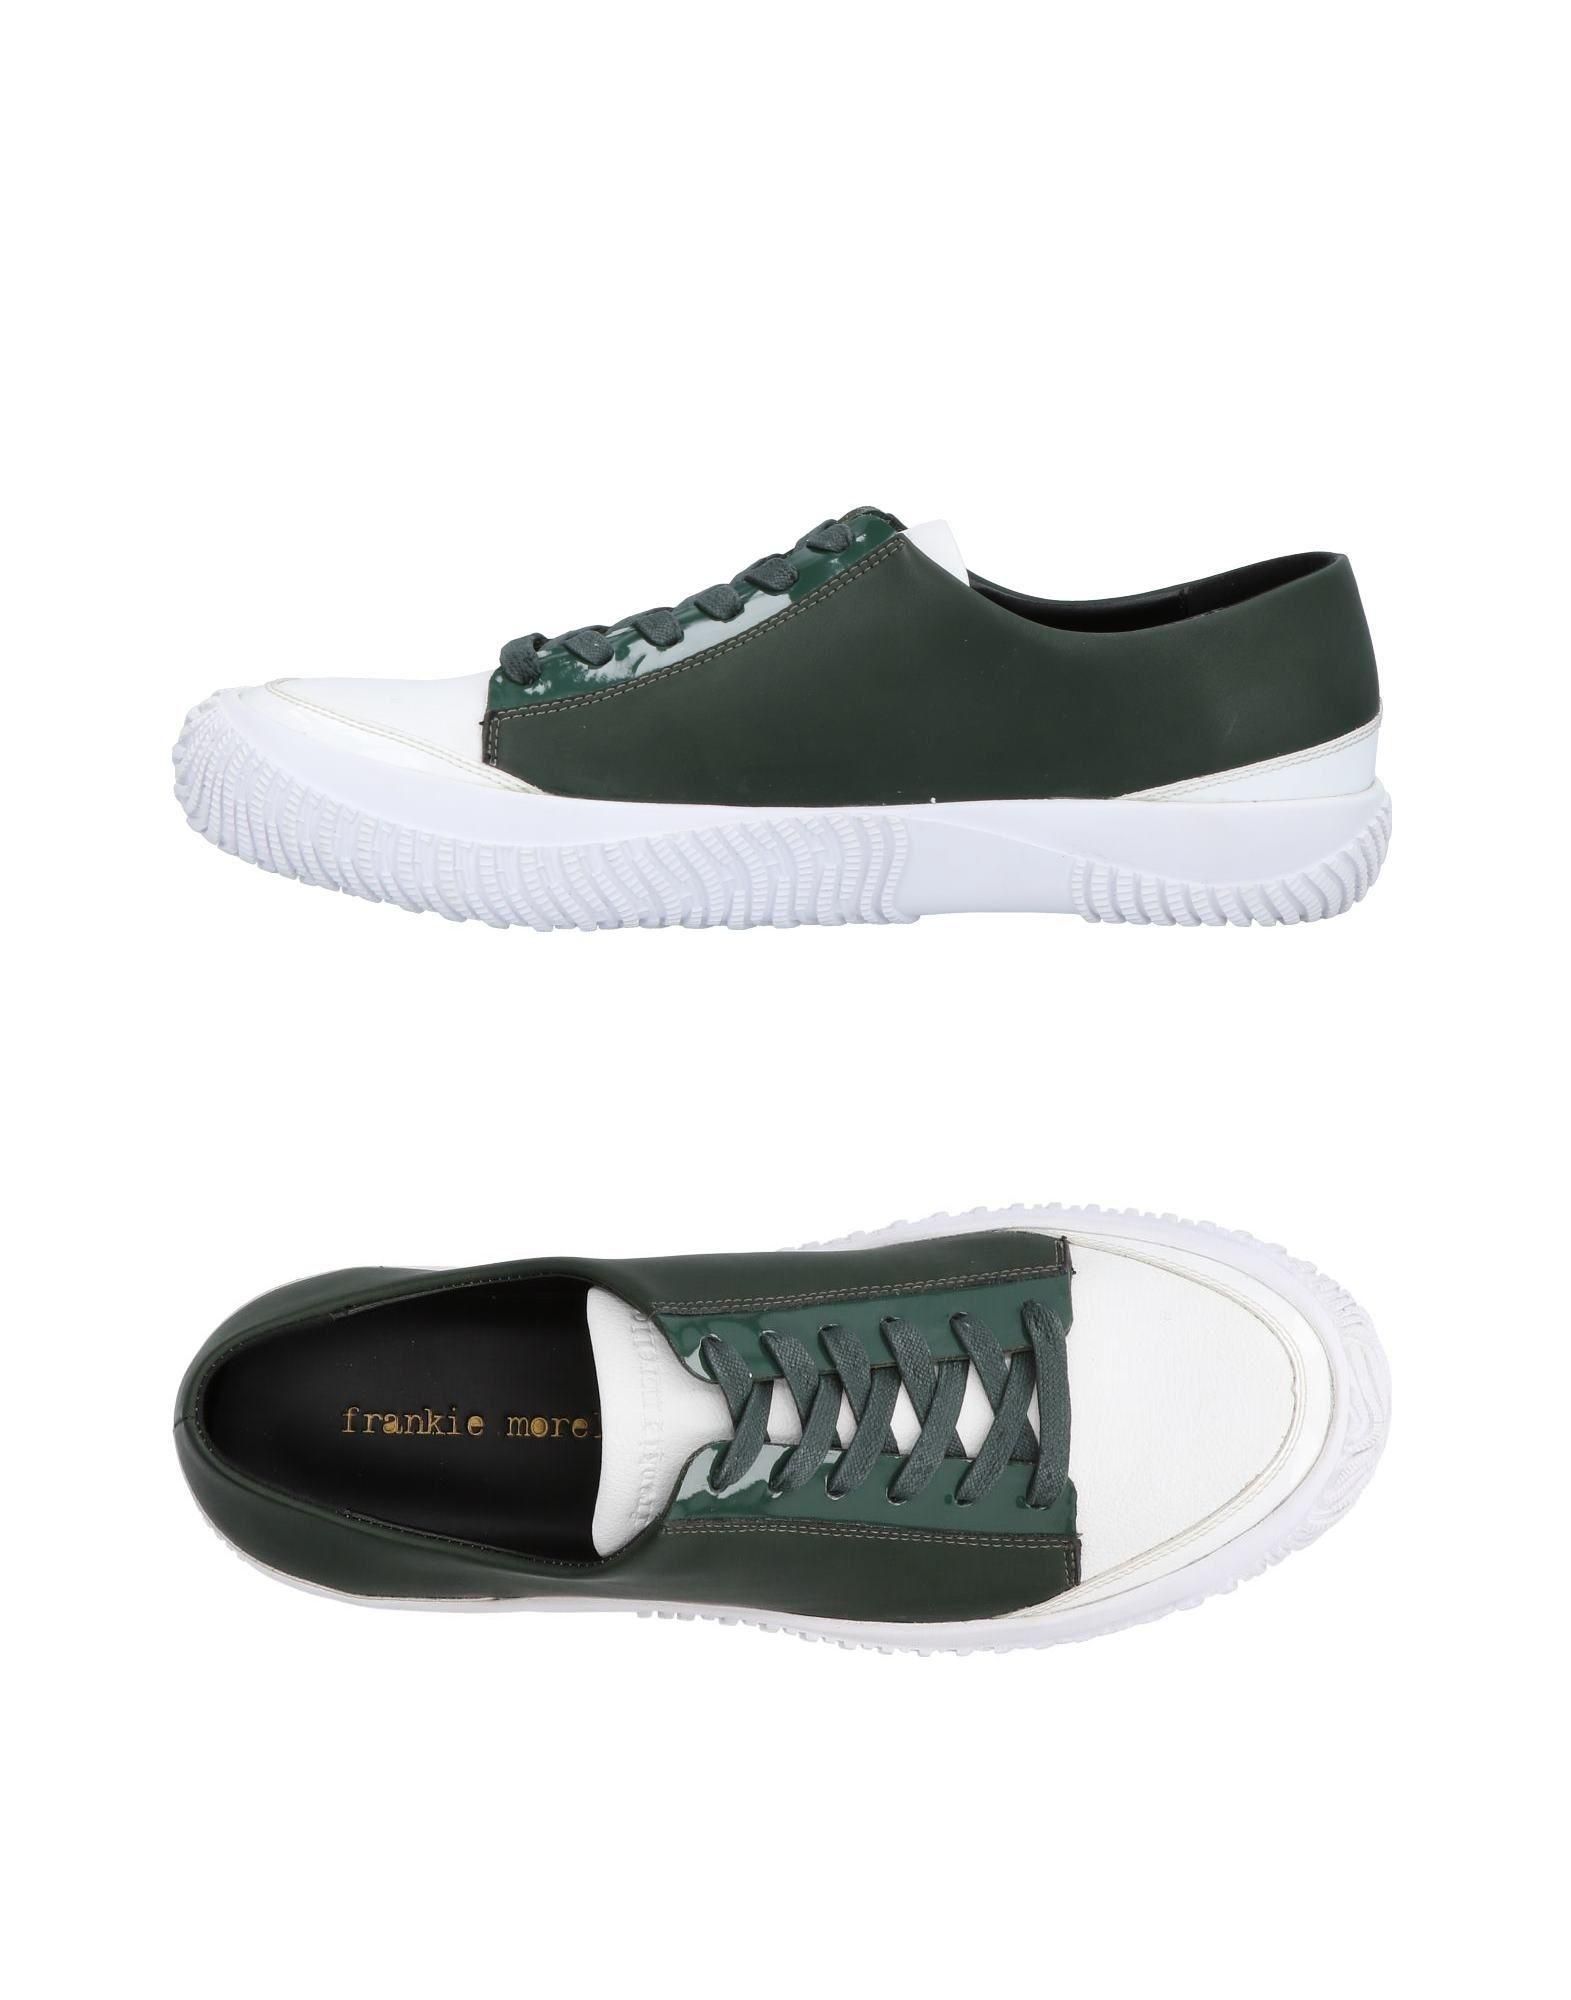 FOOTWEAR - Low-tops & sneakers Giannico ka5JRf